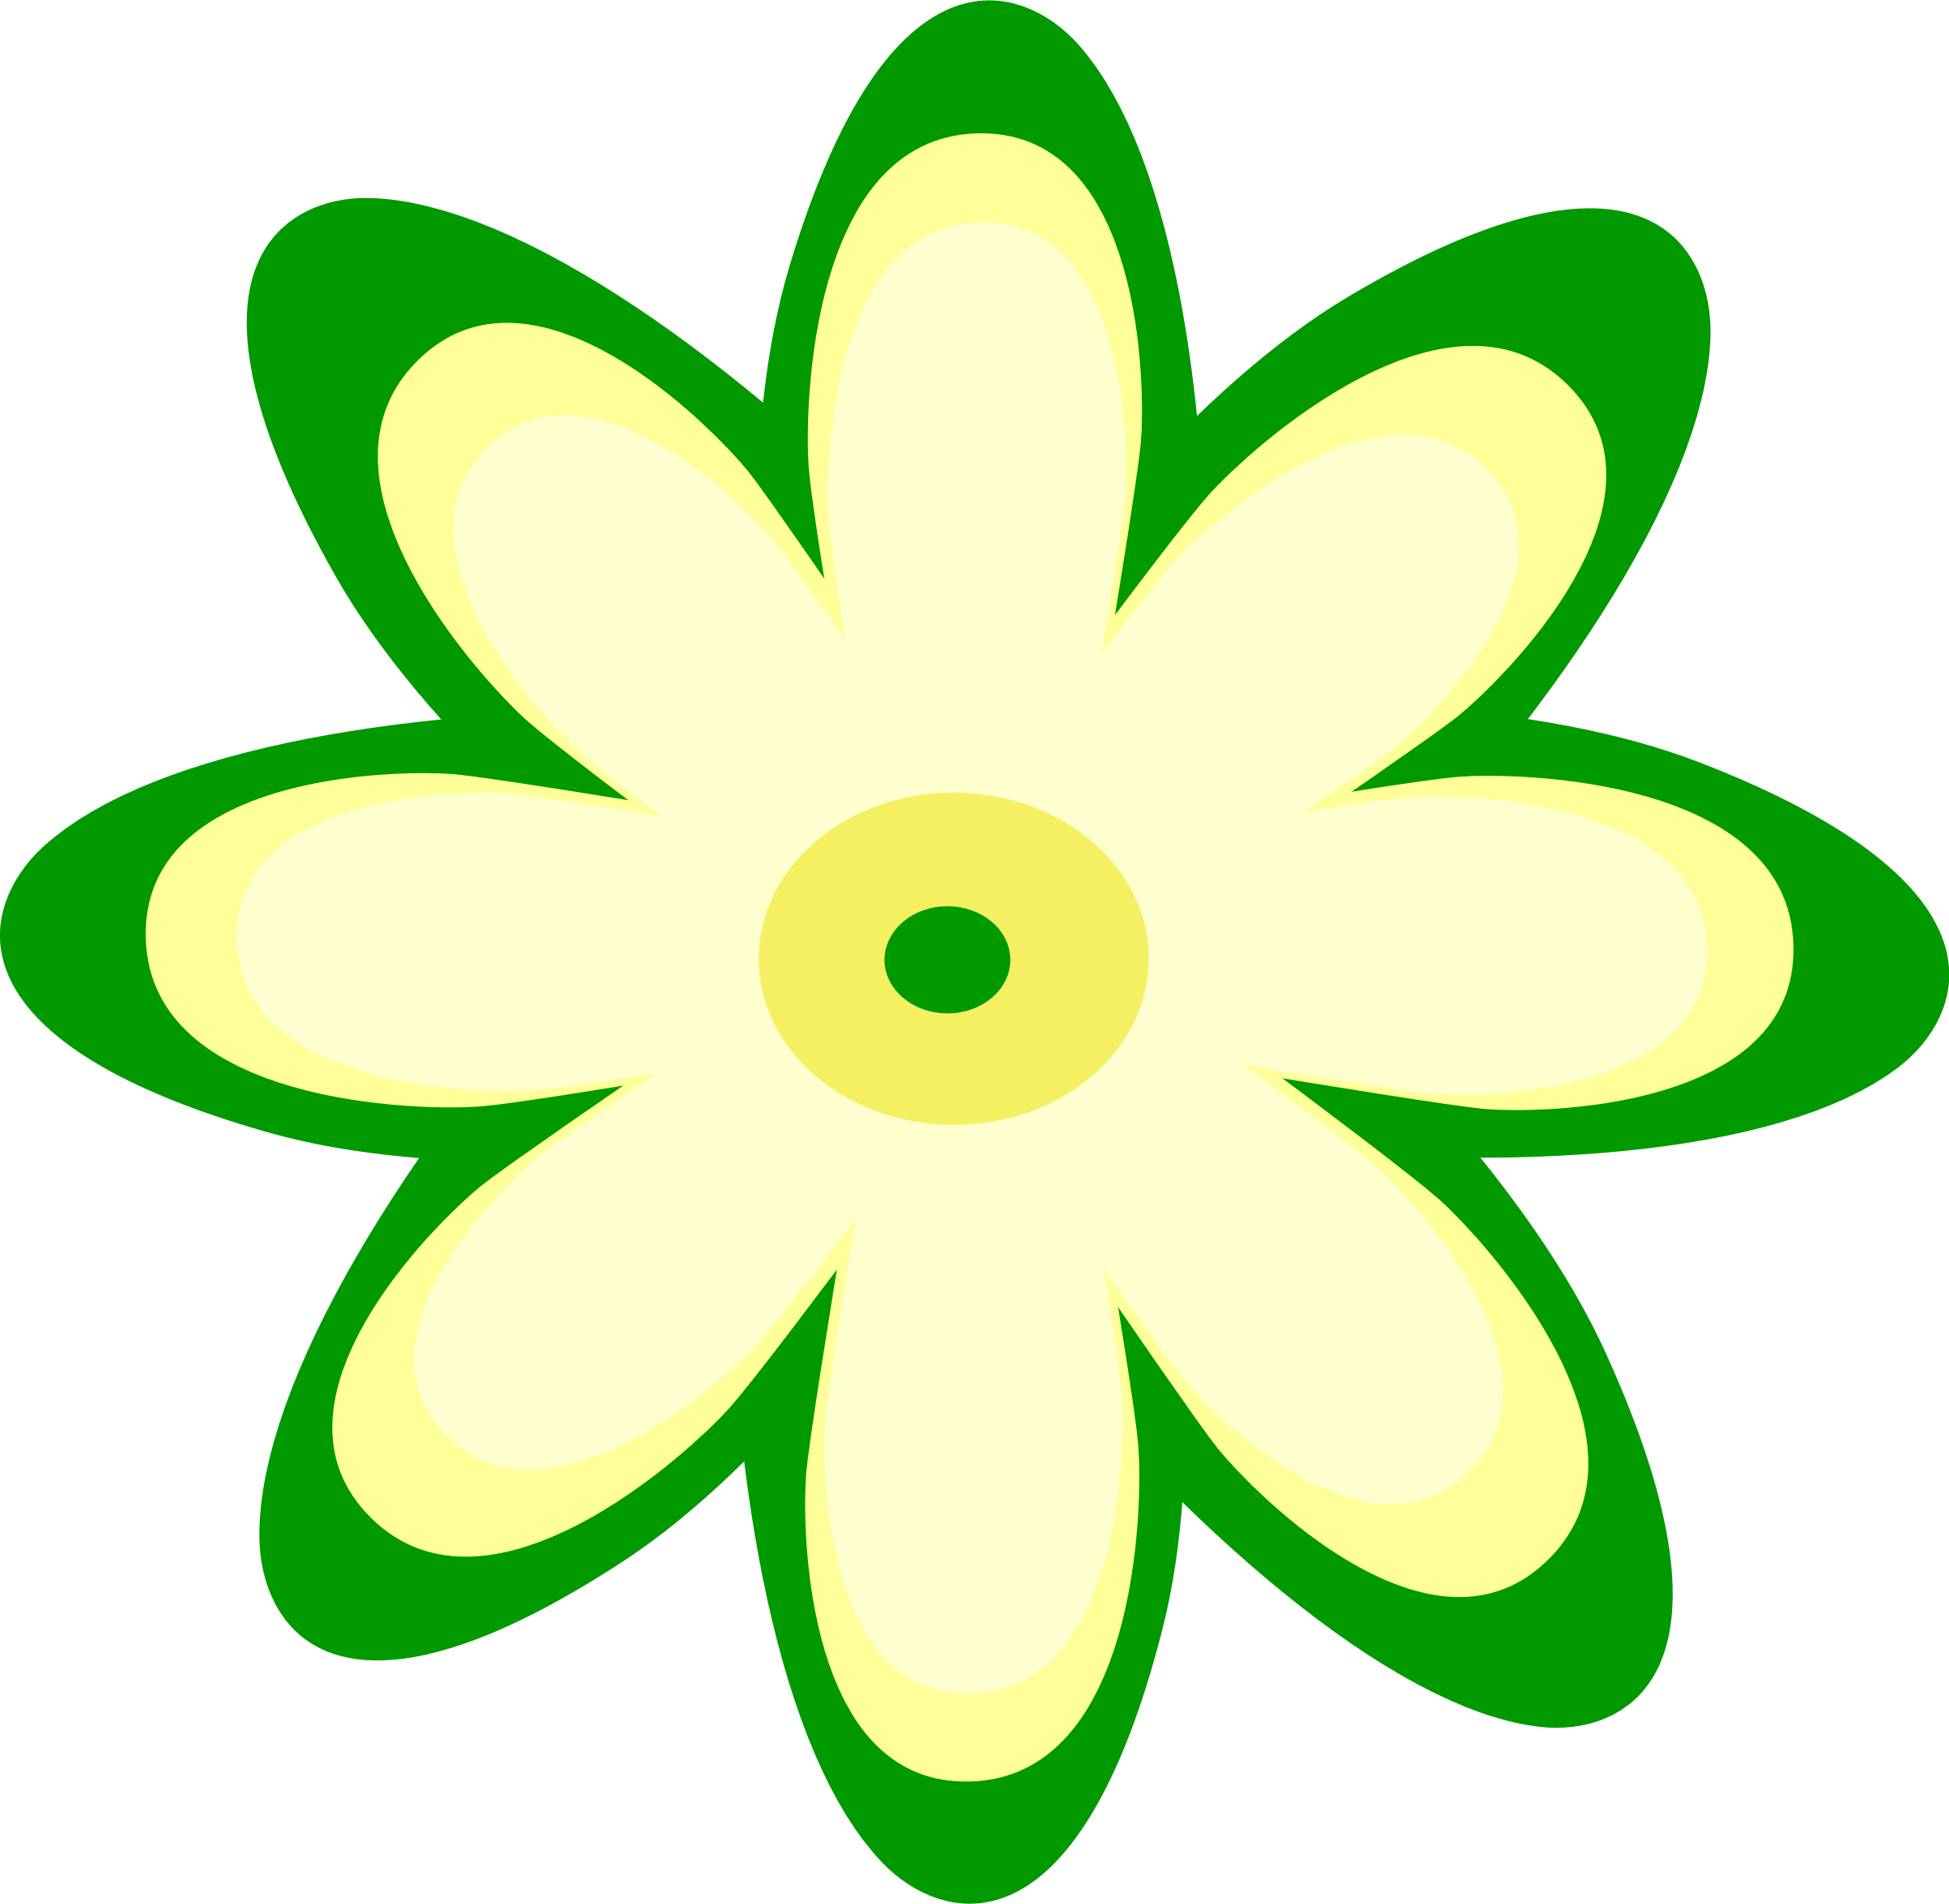 Big Flower Clipart At Getdrawings Free For Personal Use Big